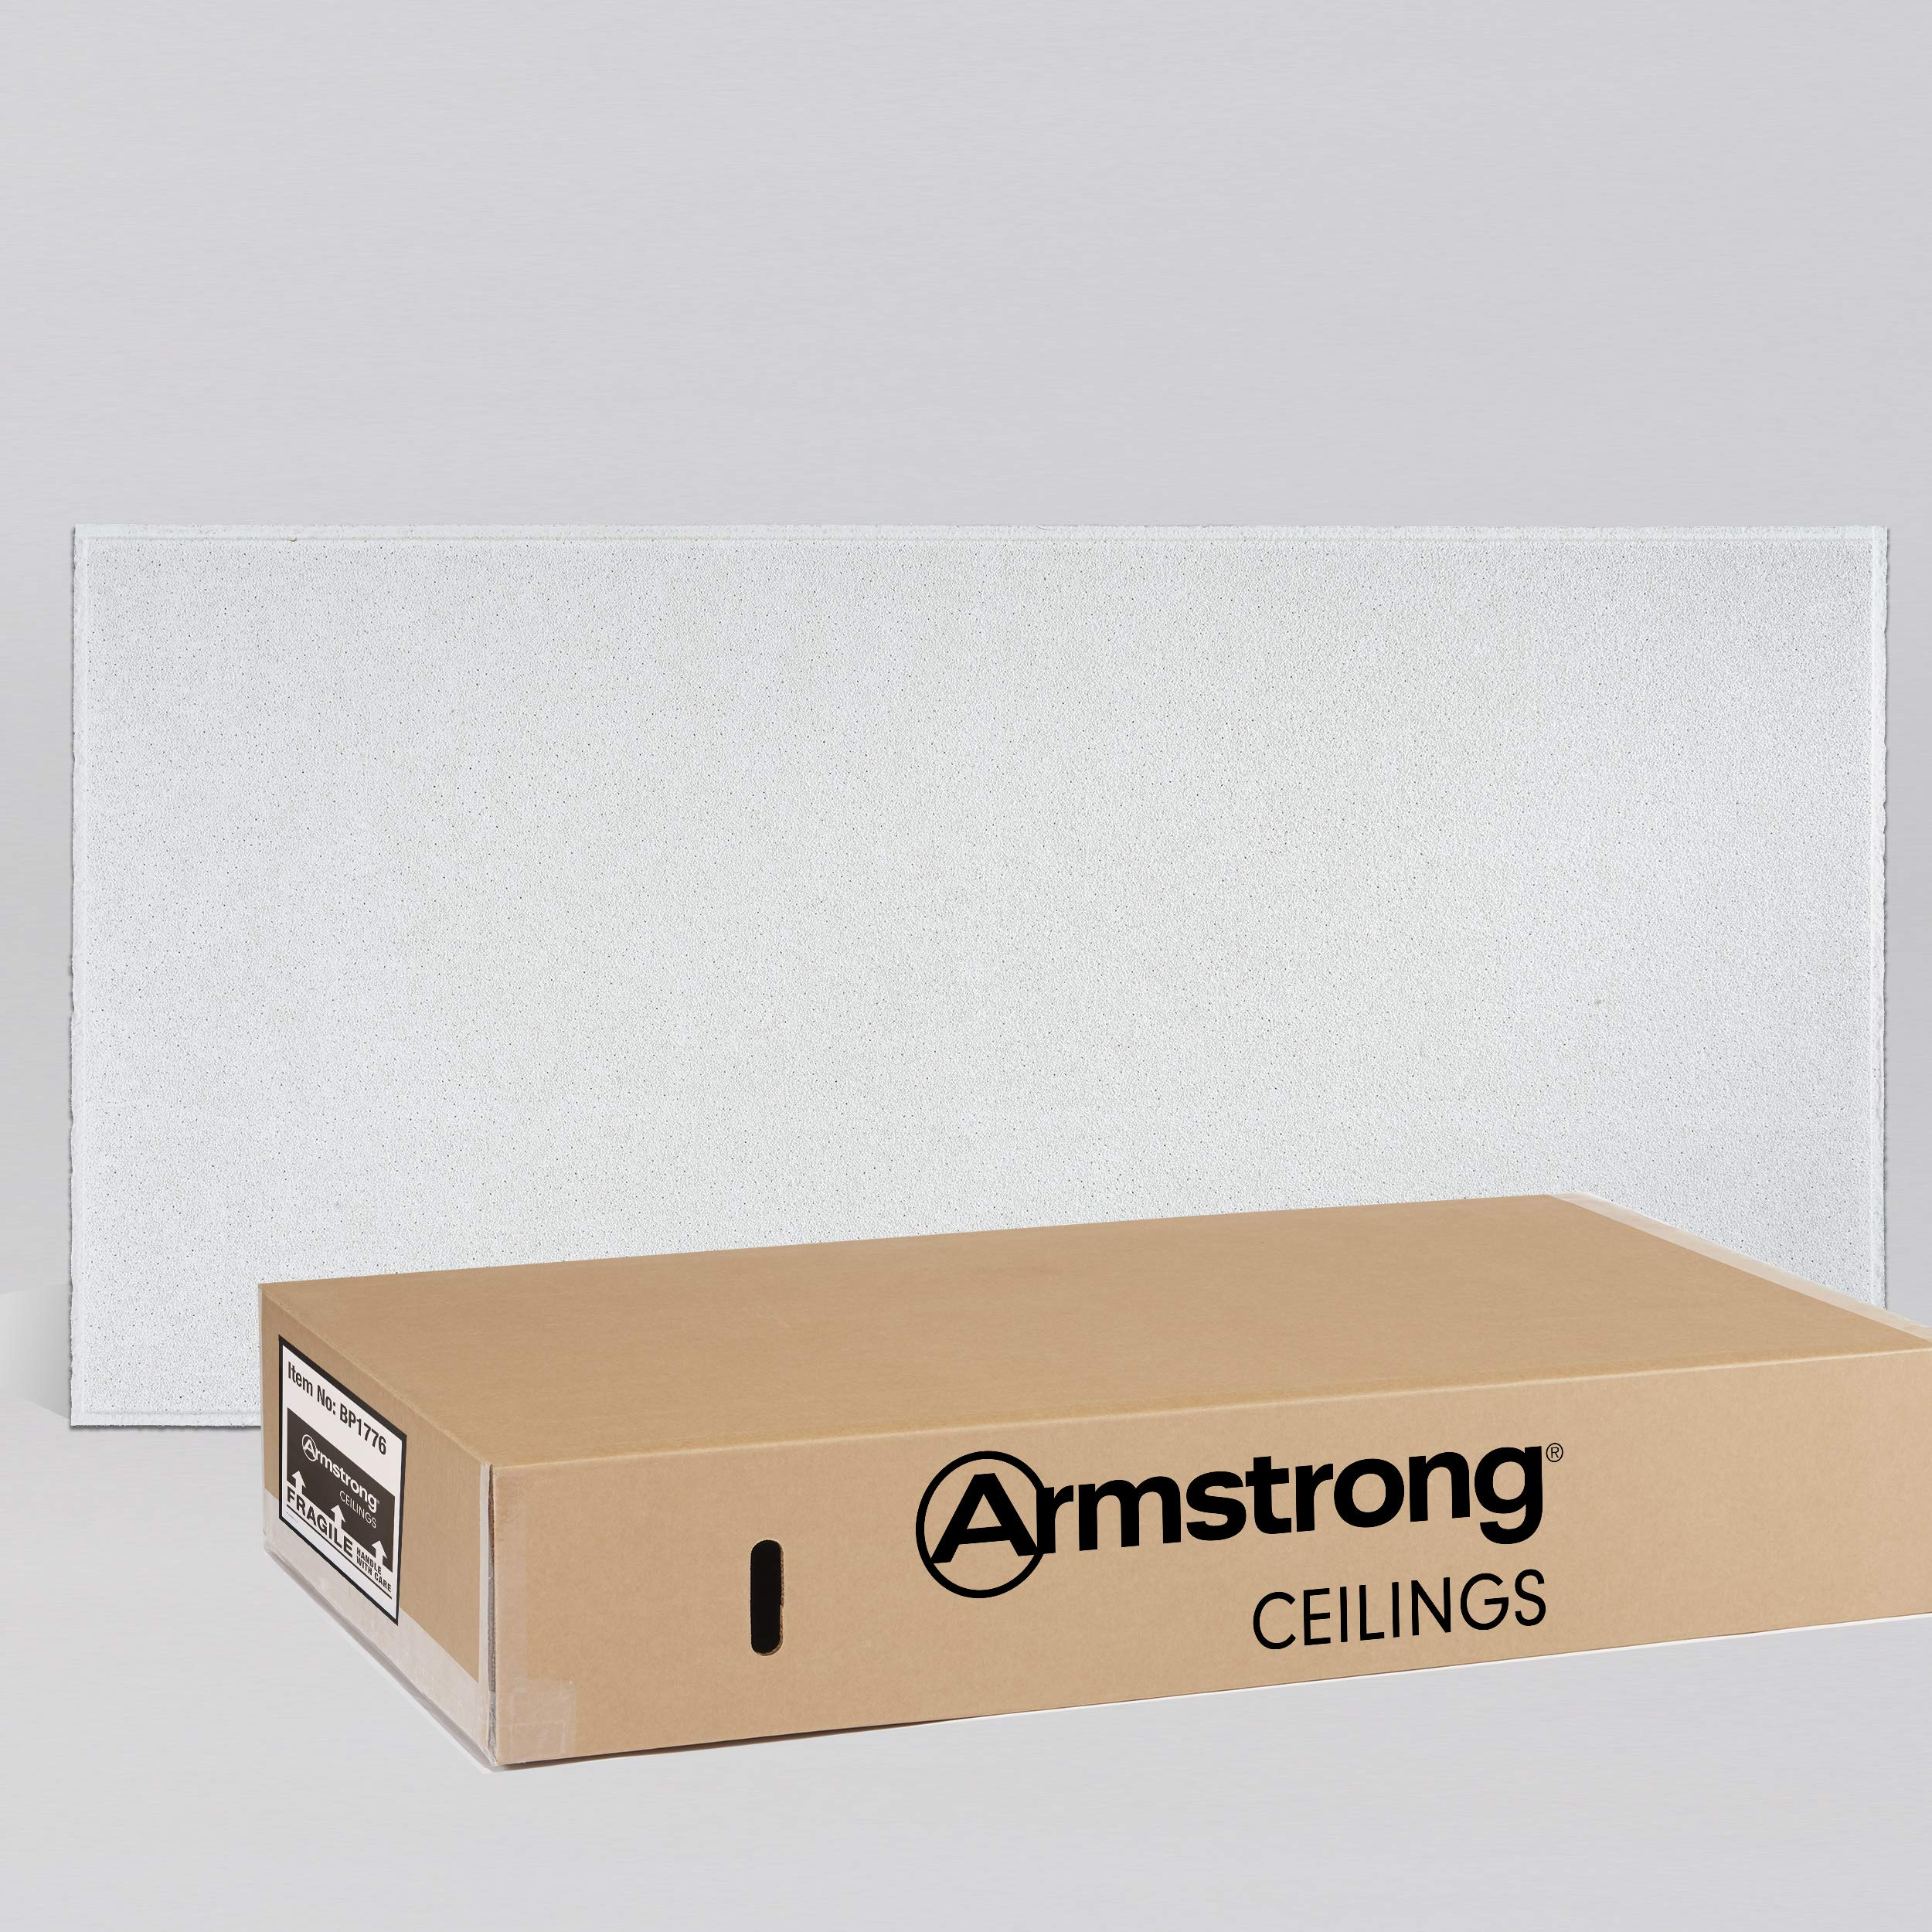 Armstrong Ceiling Tiles; 2x4 Ceiling Tiles - HUMIGUARD Plus Acoustic Ceilings for Suspended Ceiling Grid; Drop Ceiling Tiles Direct from the Manufacturer; DUNE Item 1776 - 8 pcs White Tegular